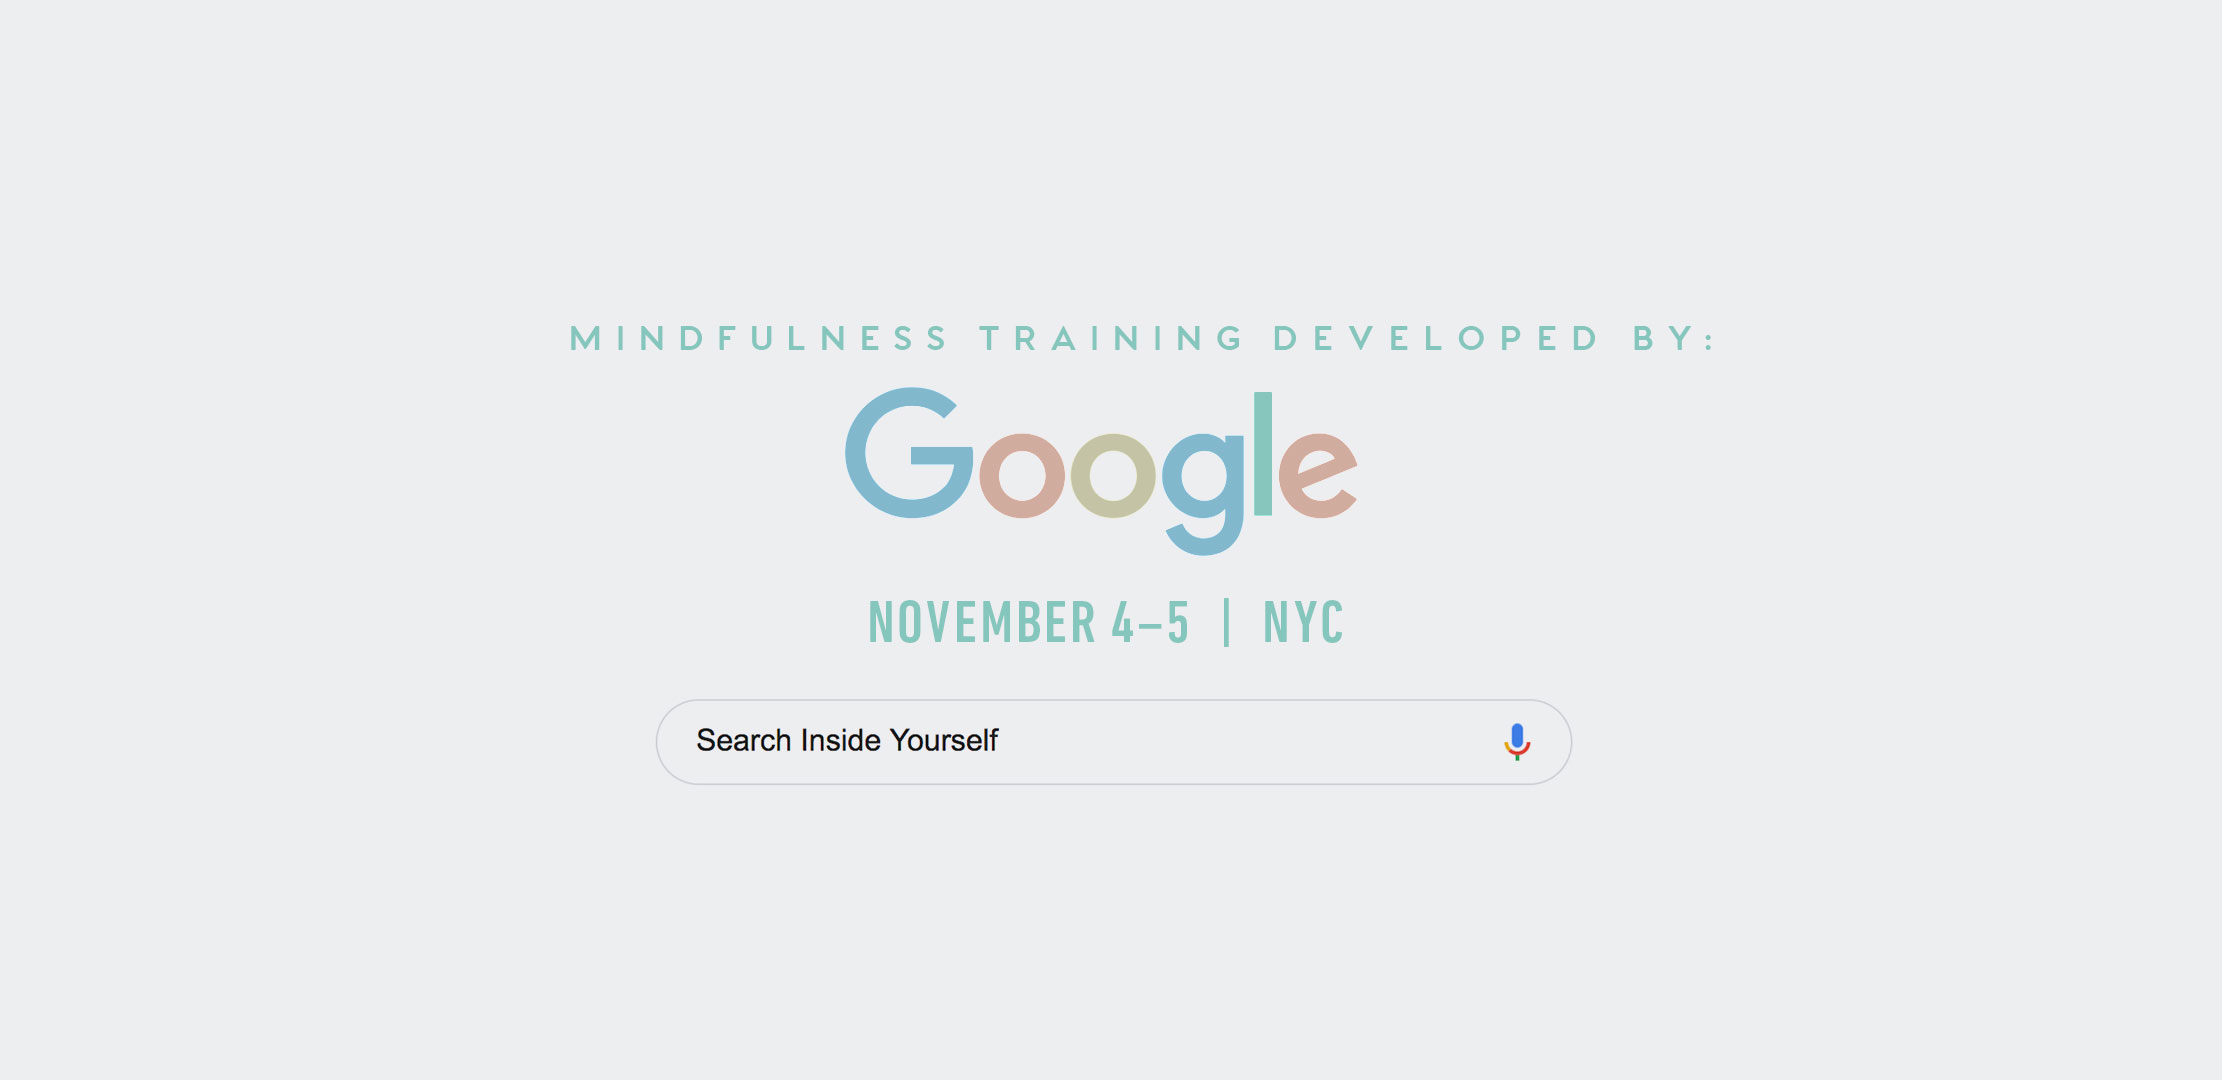 5. SEARCH INSIDE YOURSELF - nyc | NOVEMBER 4–5Developed at Google and based on the latest in neuroscience research, the Search Inside Yourself (SIY) program teaches attention and mindfulness training